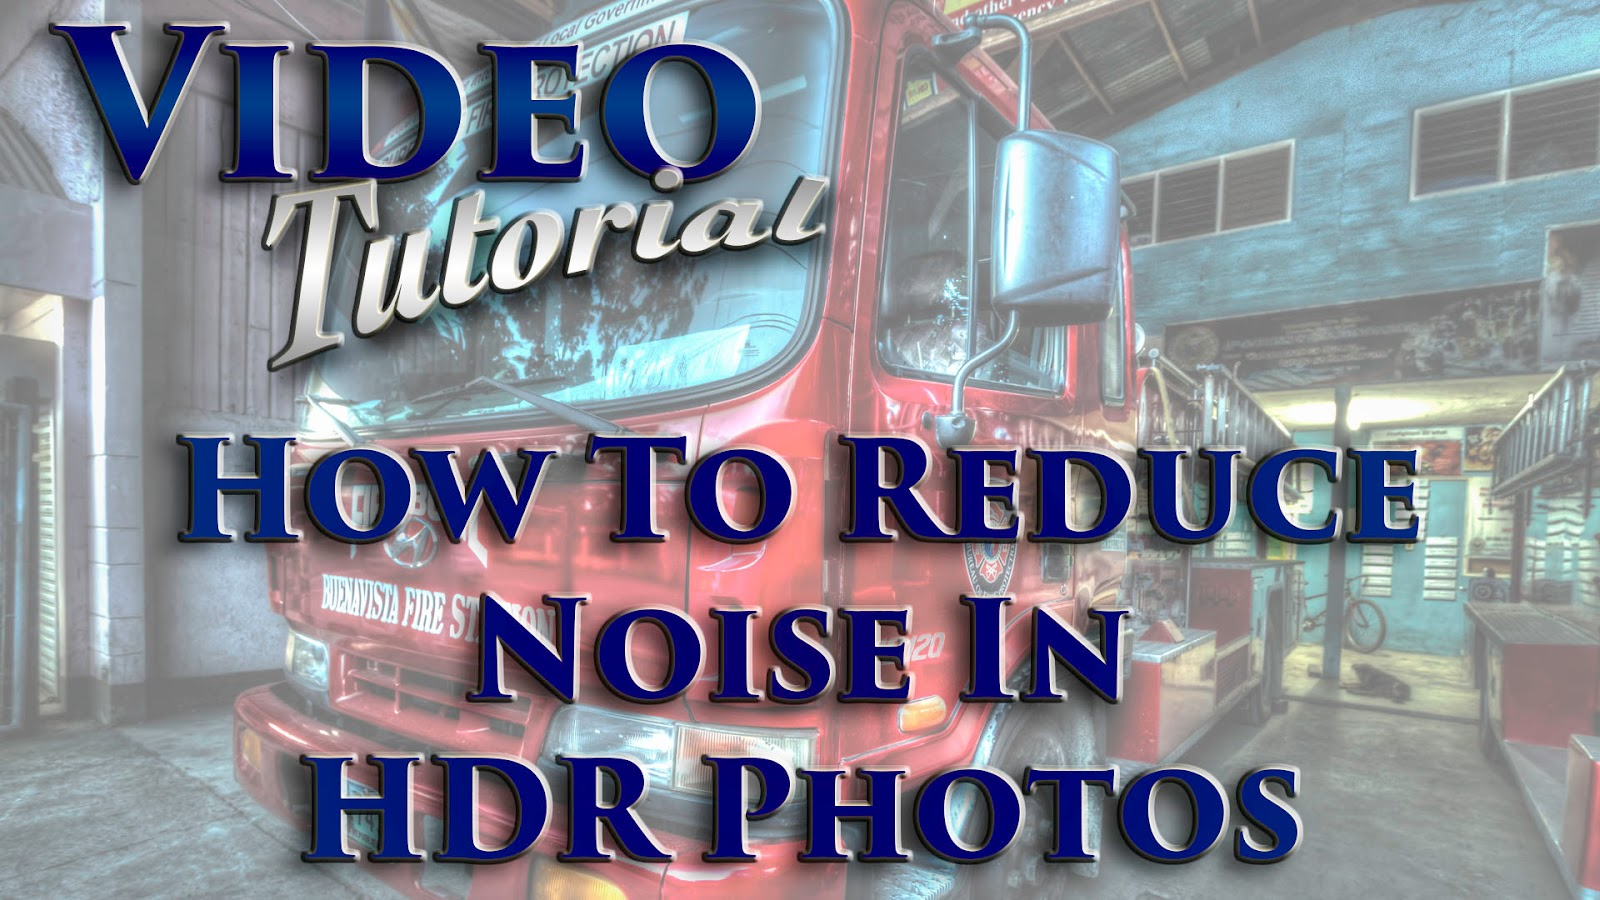 Learn How To Reduce Noise In HDR Photos